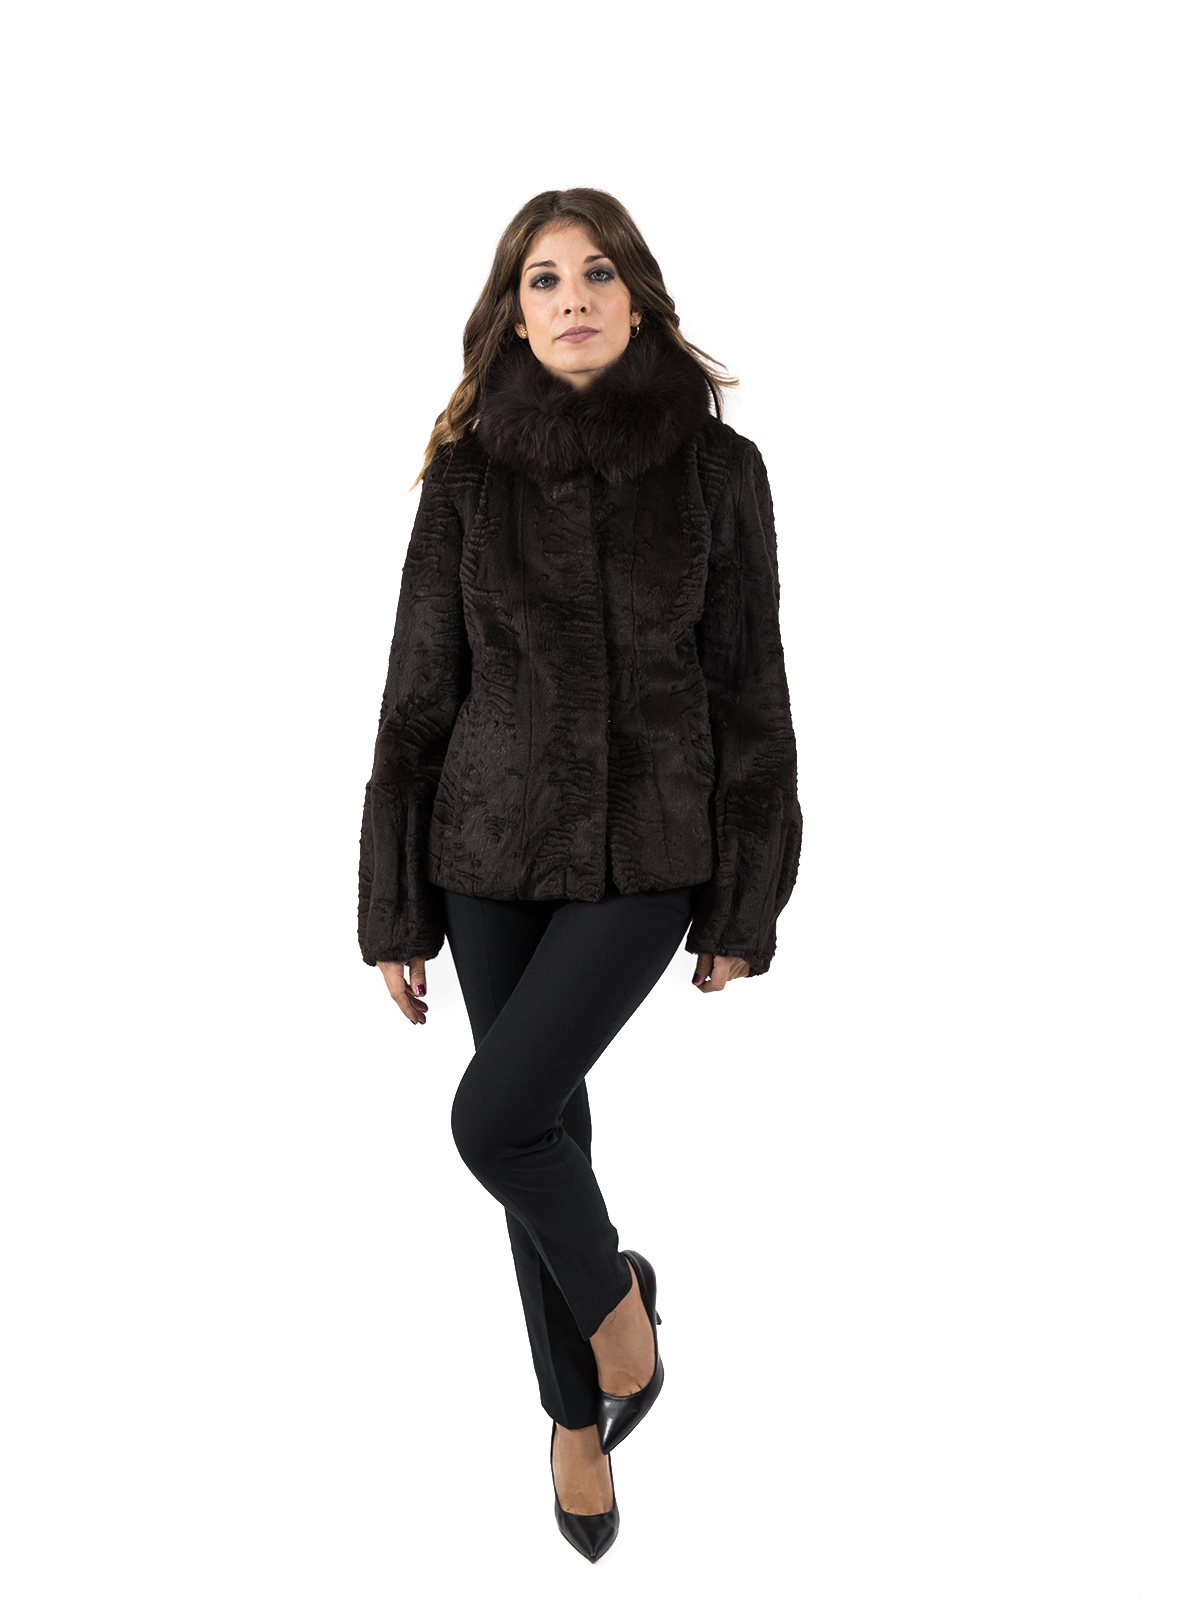 Suprema Giacca Donna LapinF235 LAPIN